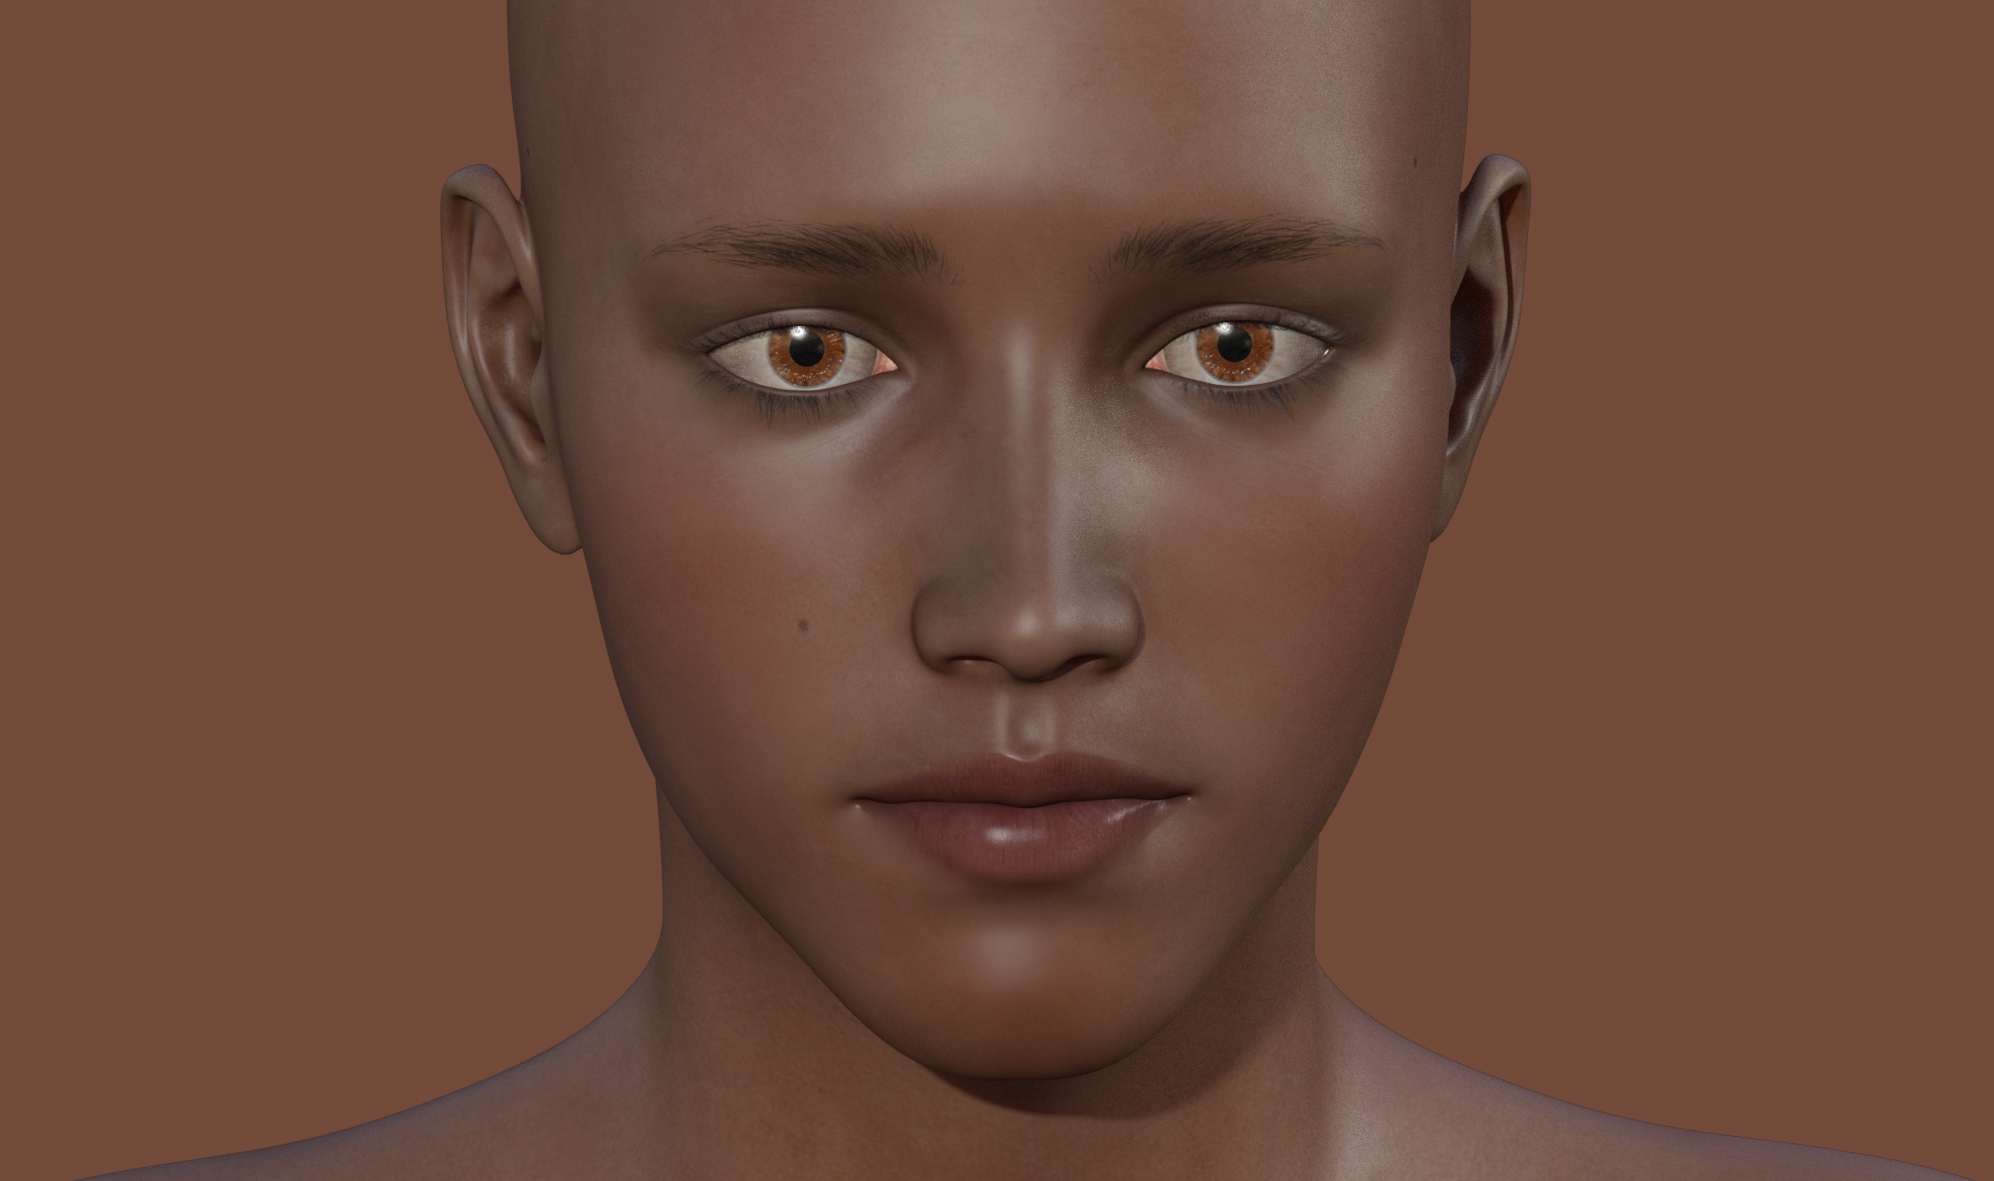 Computer generated face of a human